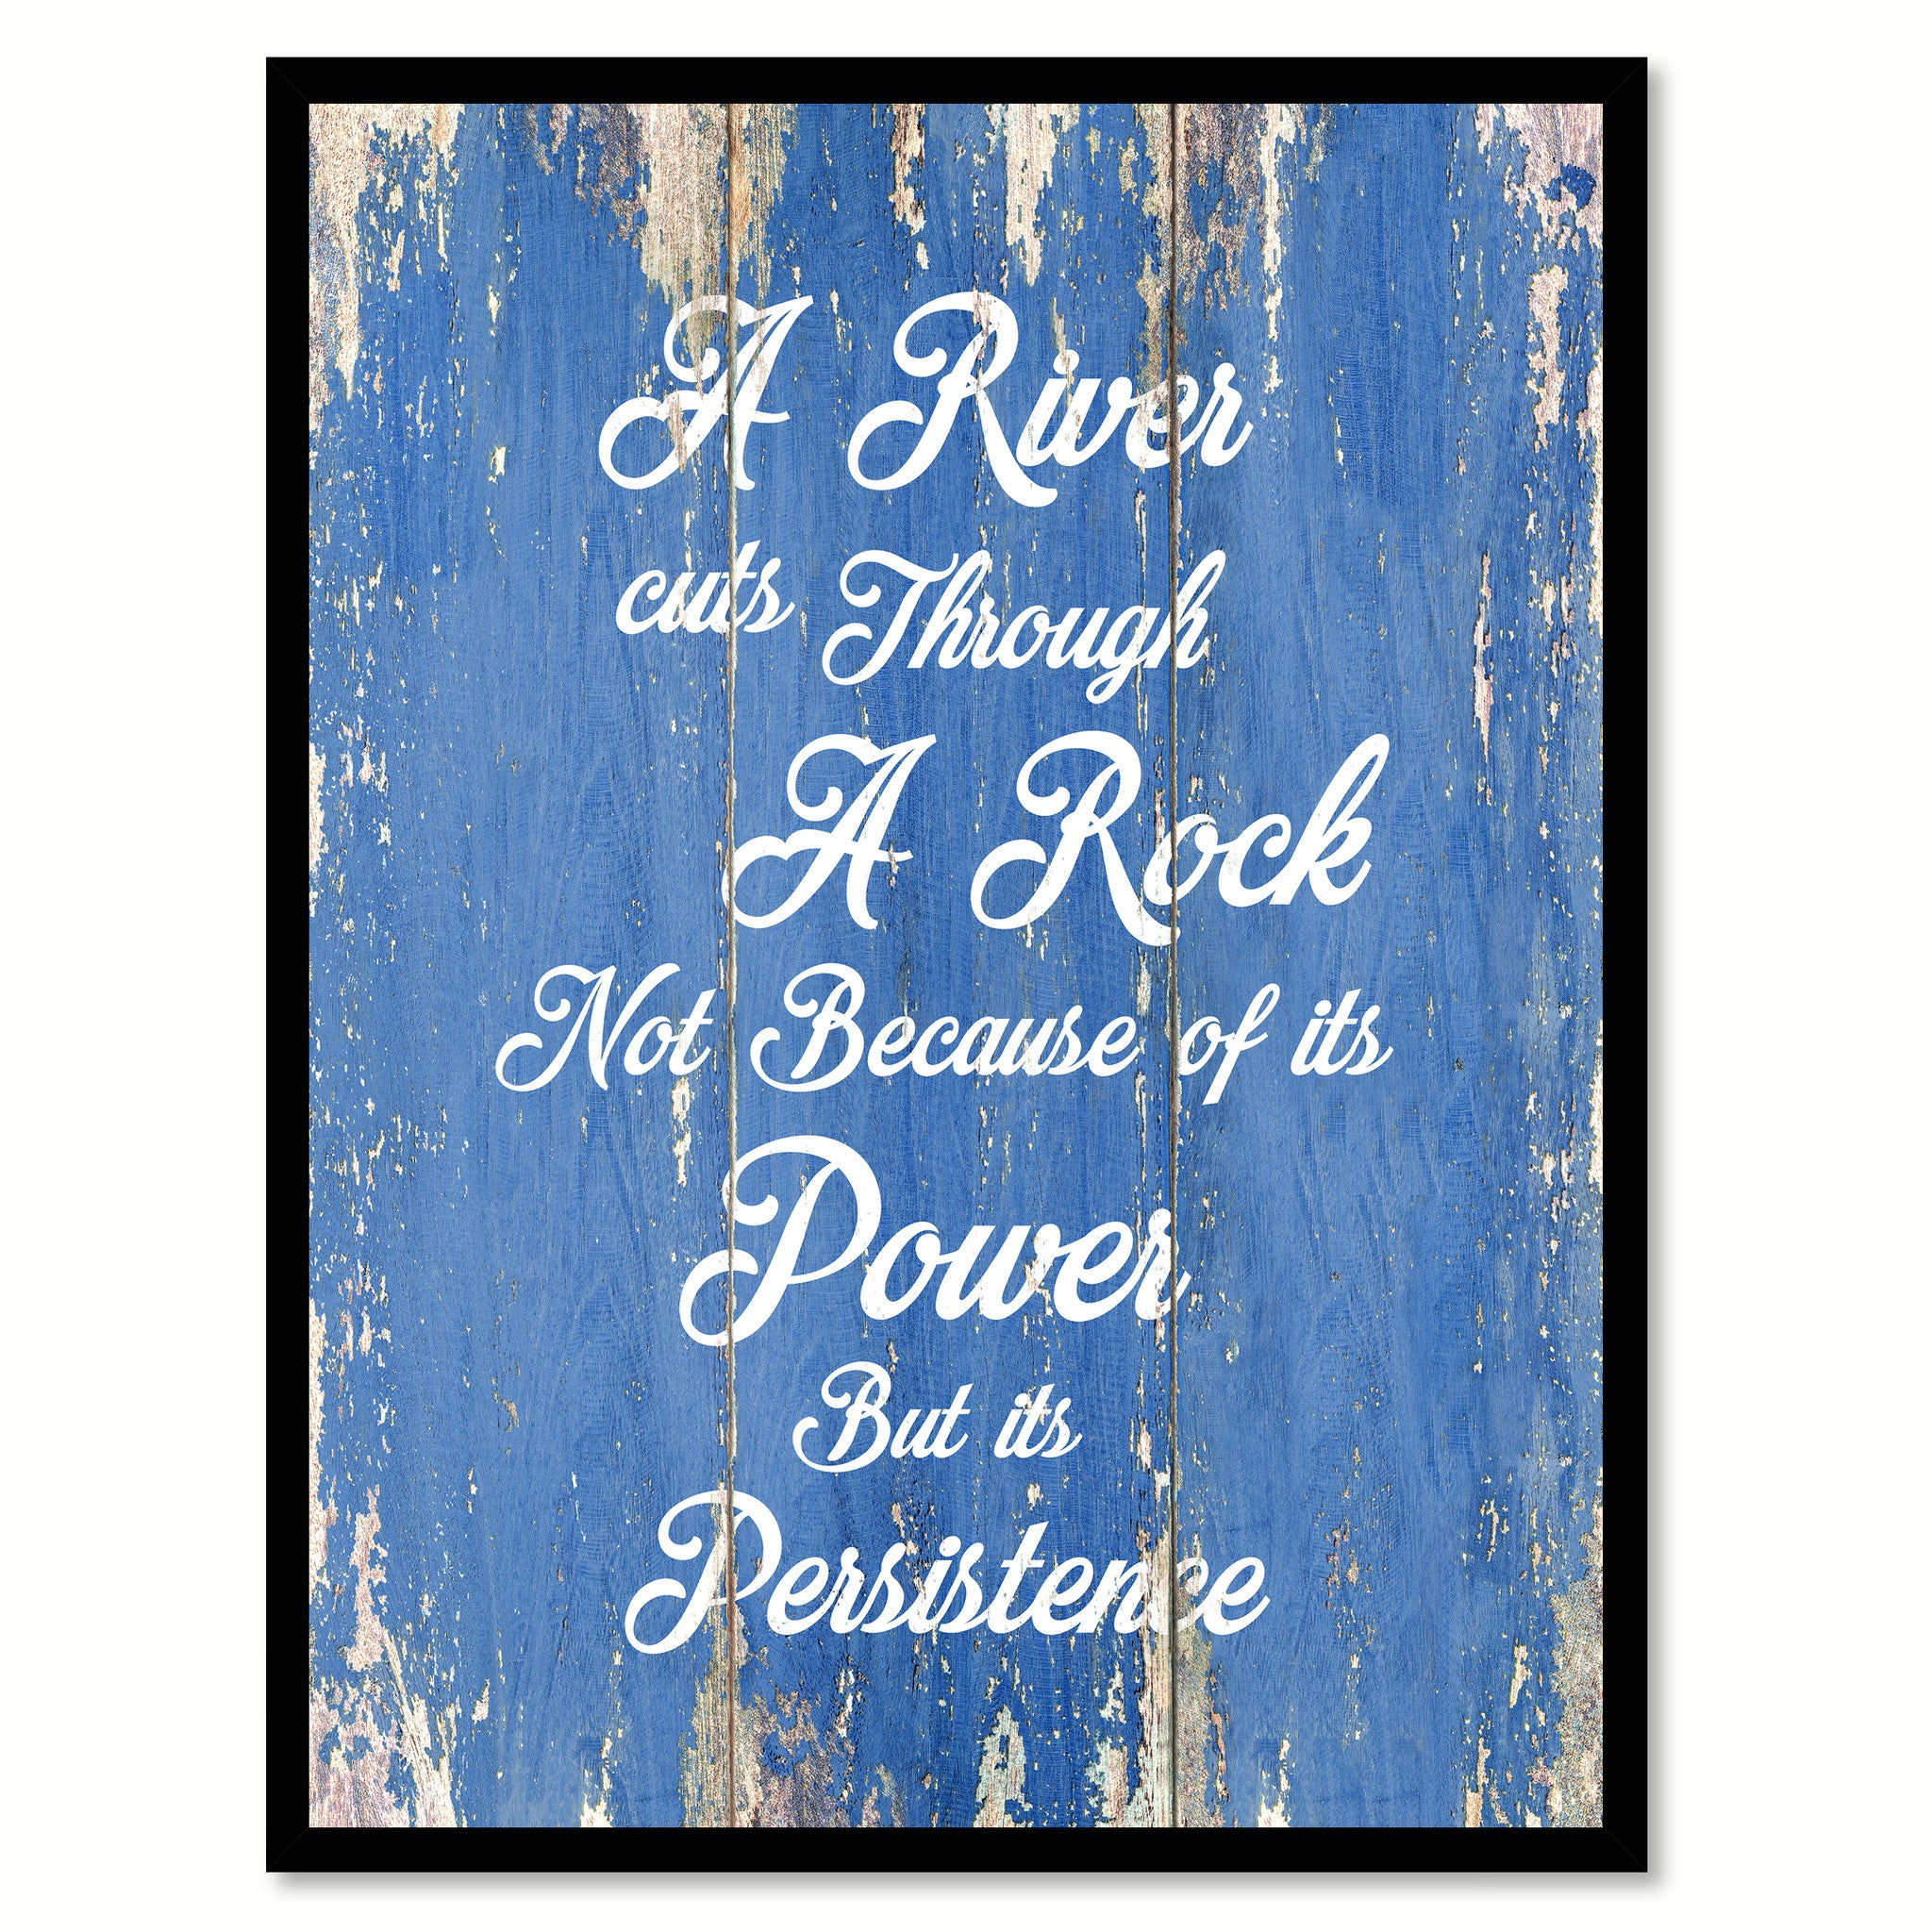 A River Cuts Through A Rock Not Because Of Its Power But Its Persistence Inspirational Quote Saying Gift Ideas Home Decor Wall Art